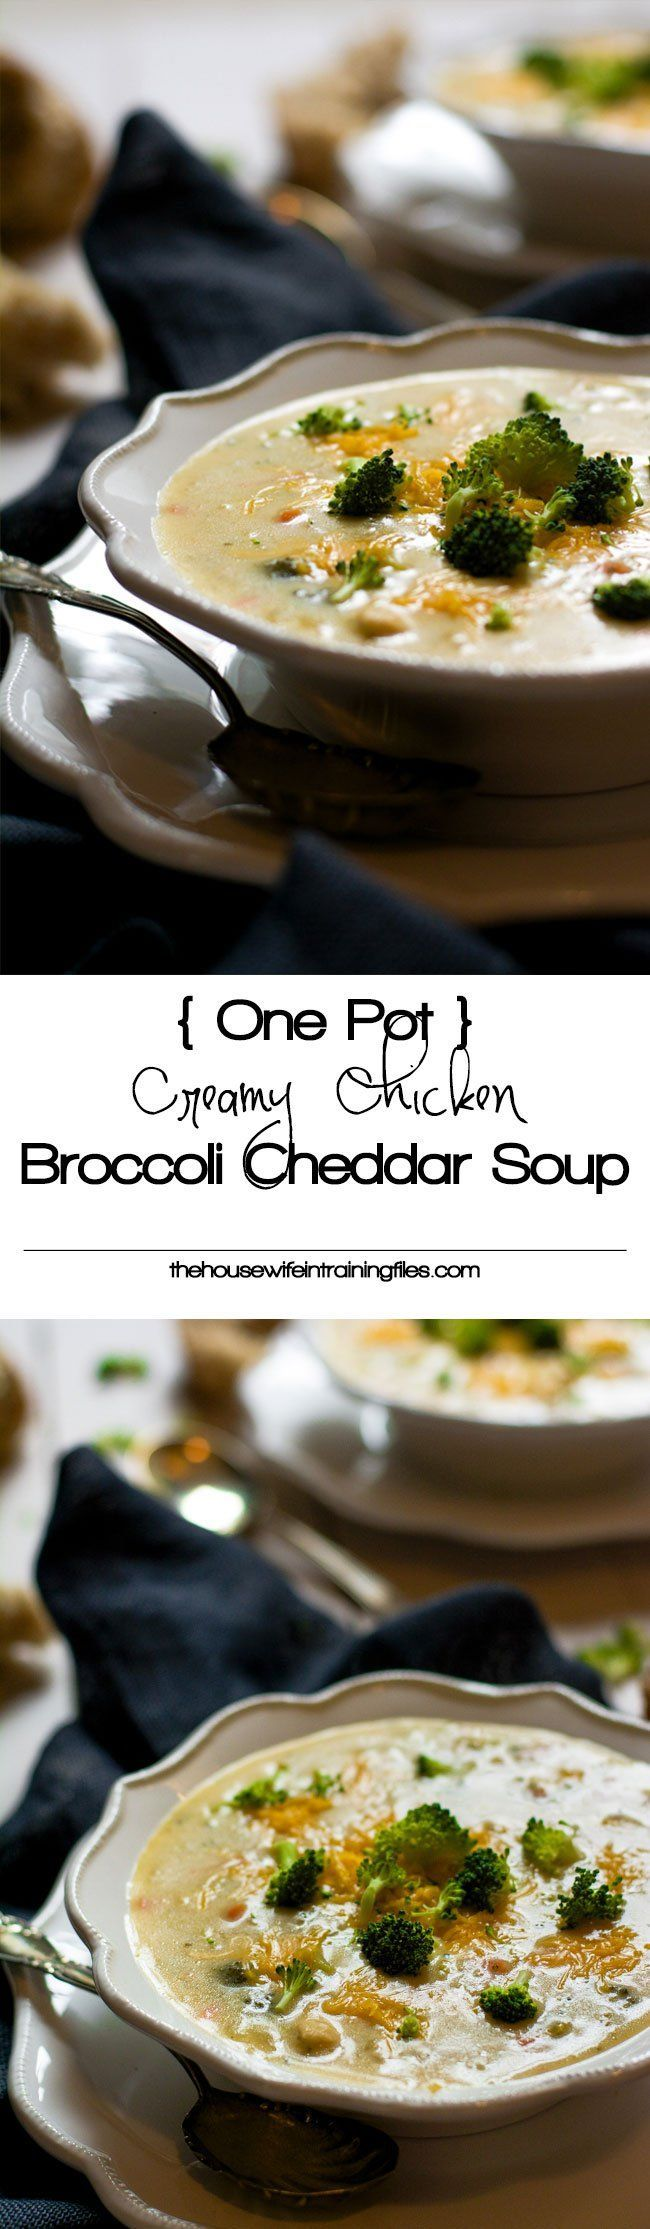 One Pot Lighter Creamy Chicken Broccoli Cheddar Soup